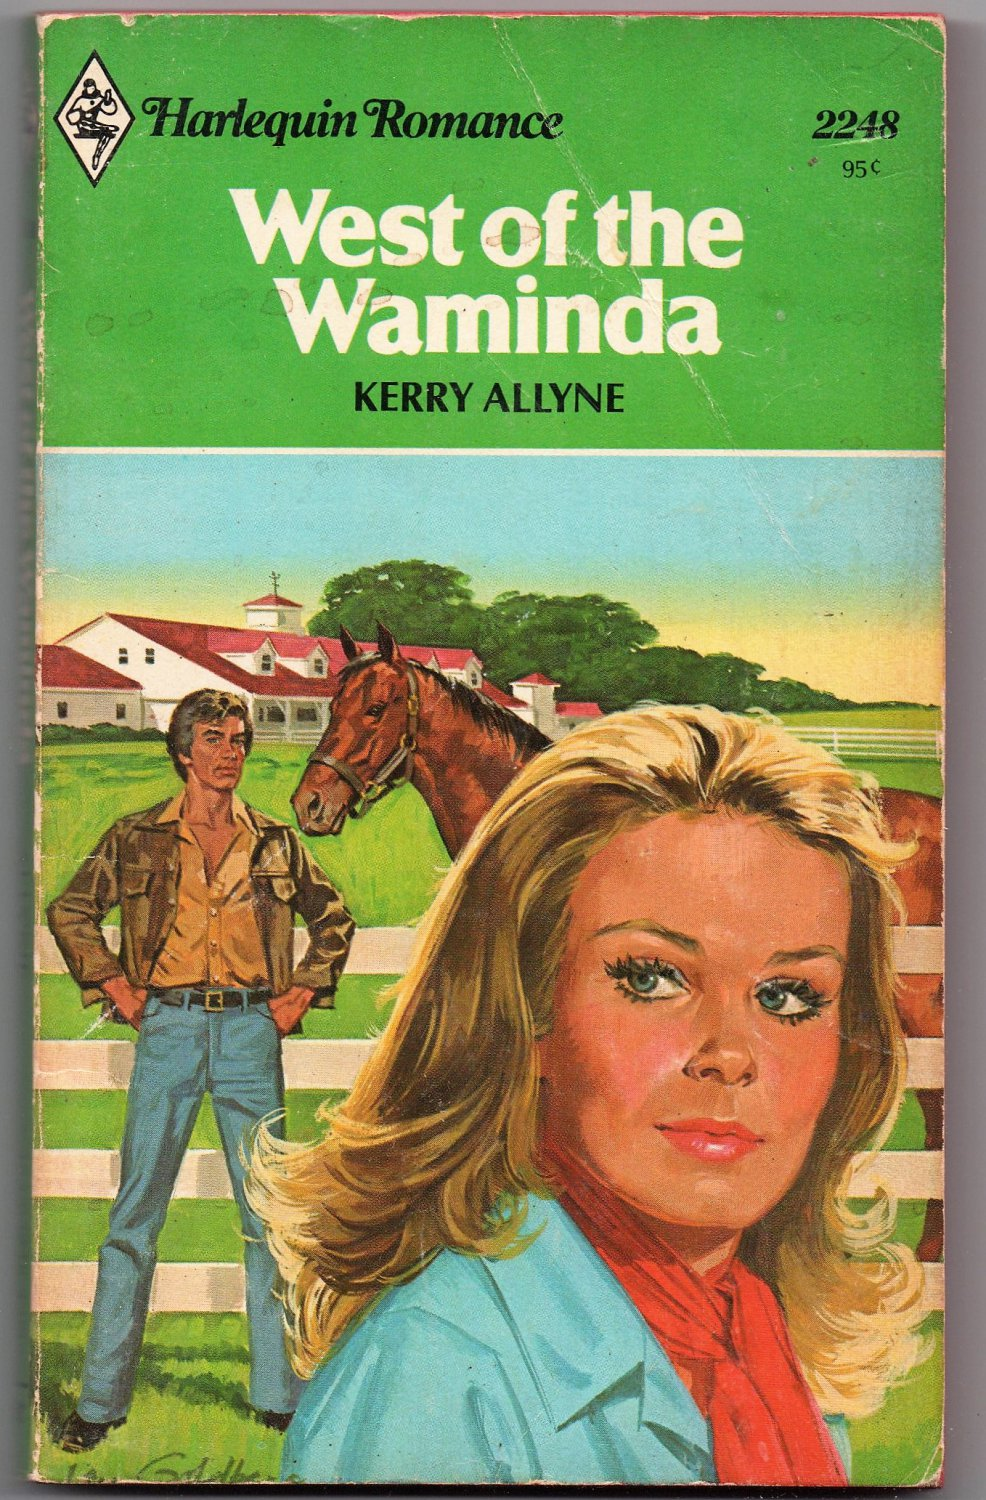 West of the Waminda by Kerry Allyne 1979 Harlequin Romance 2248 0373022484